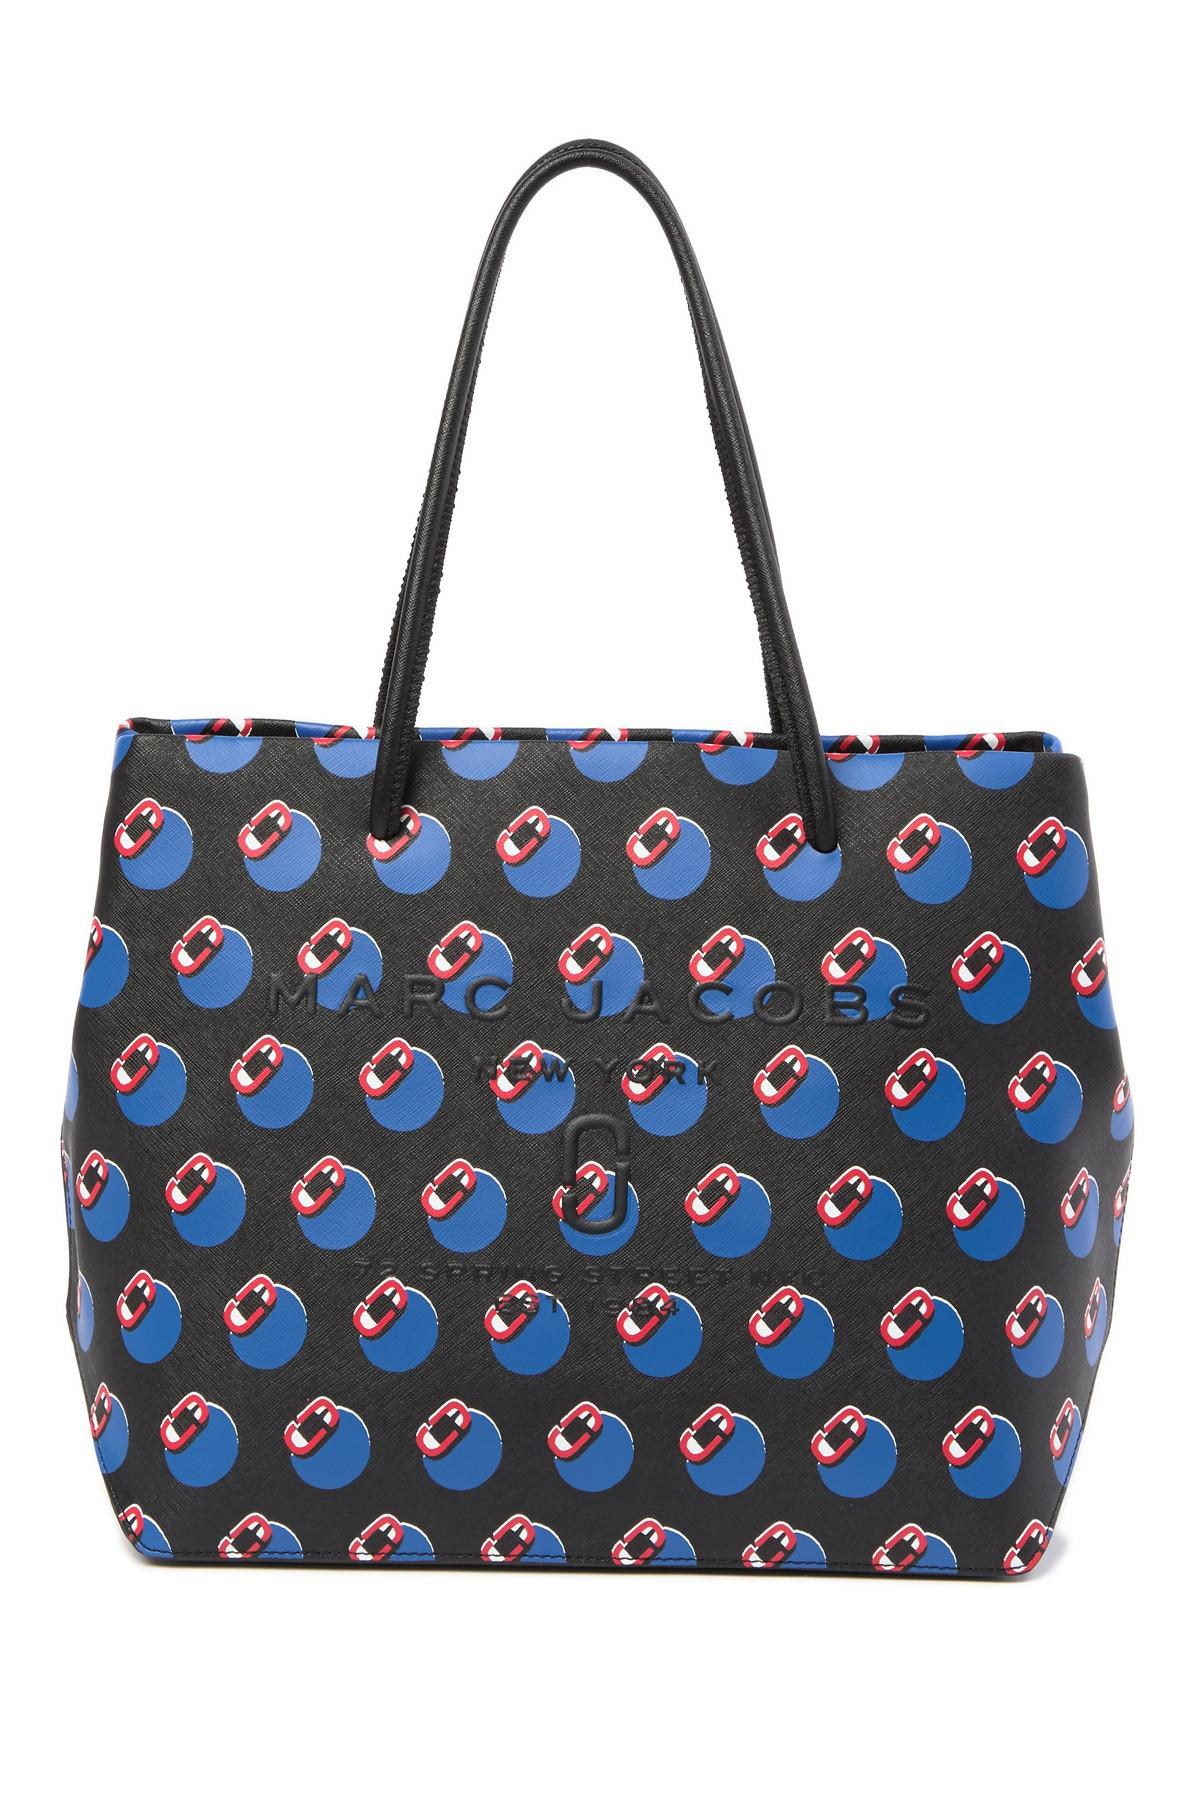 f75c85089476 Lyst - Marc Jacobs Logo Shopper Screaming Leather Tote Bag in Blue